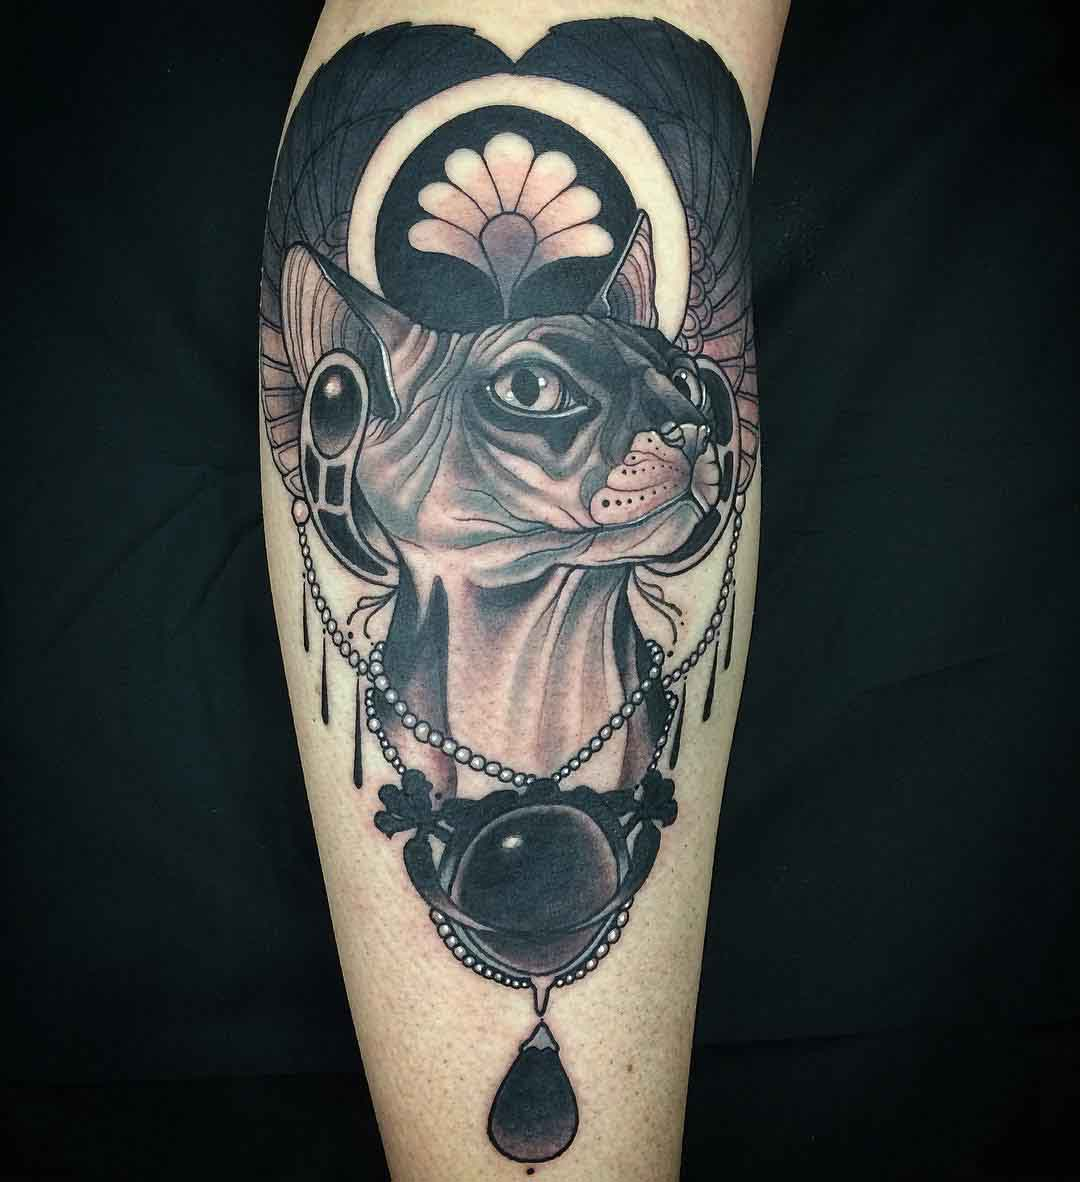 sphynx cat tattoo egypt with jewels